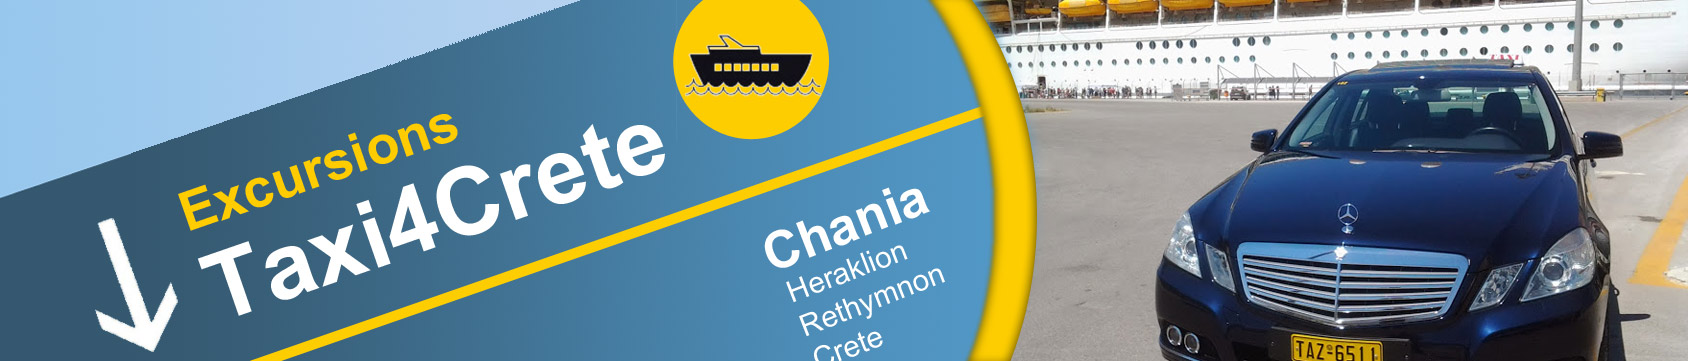 Taxi Excursions Chania